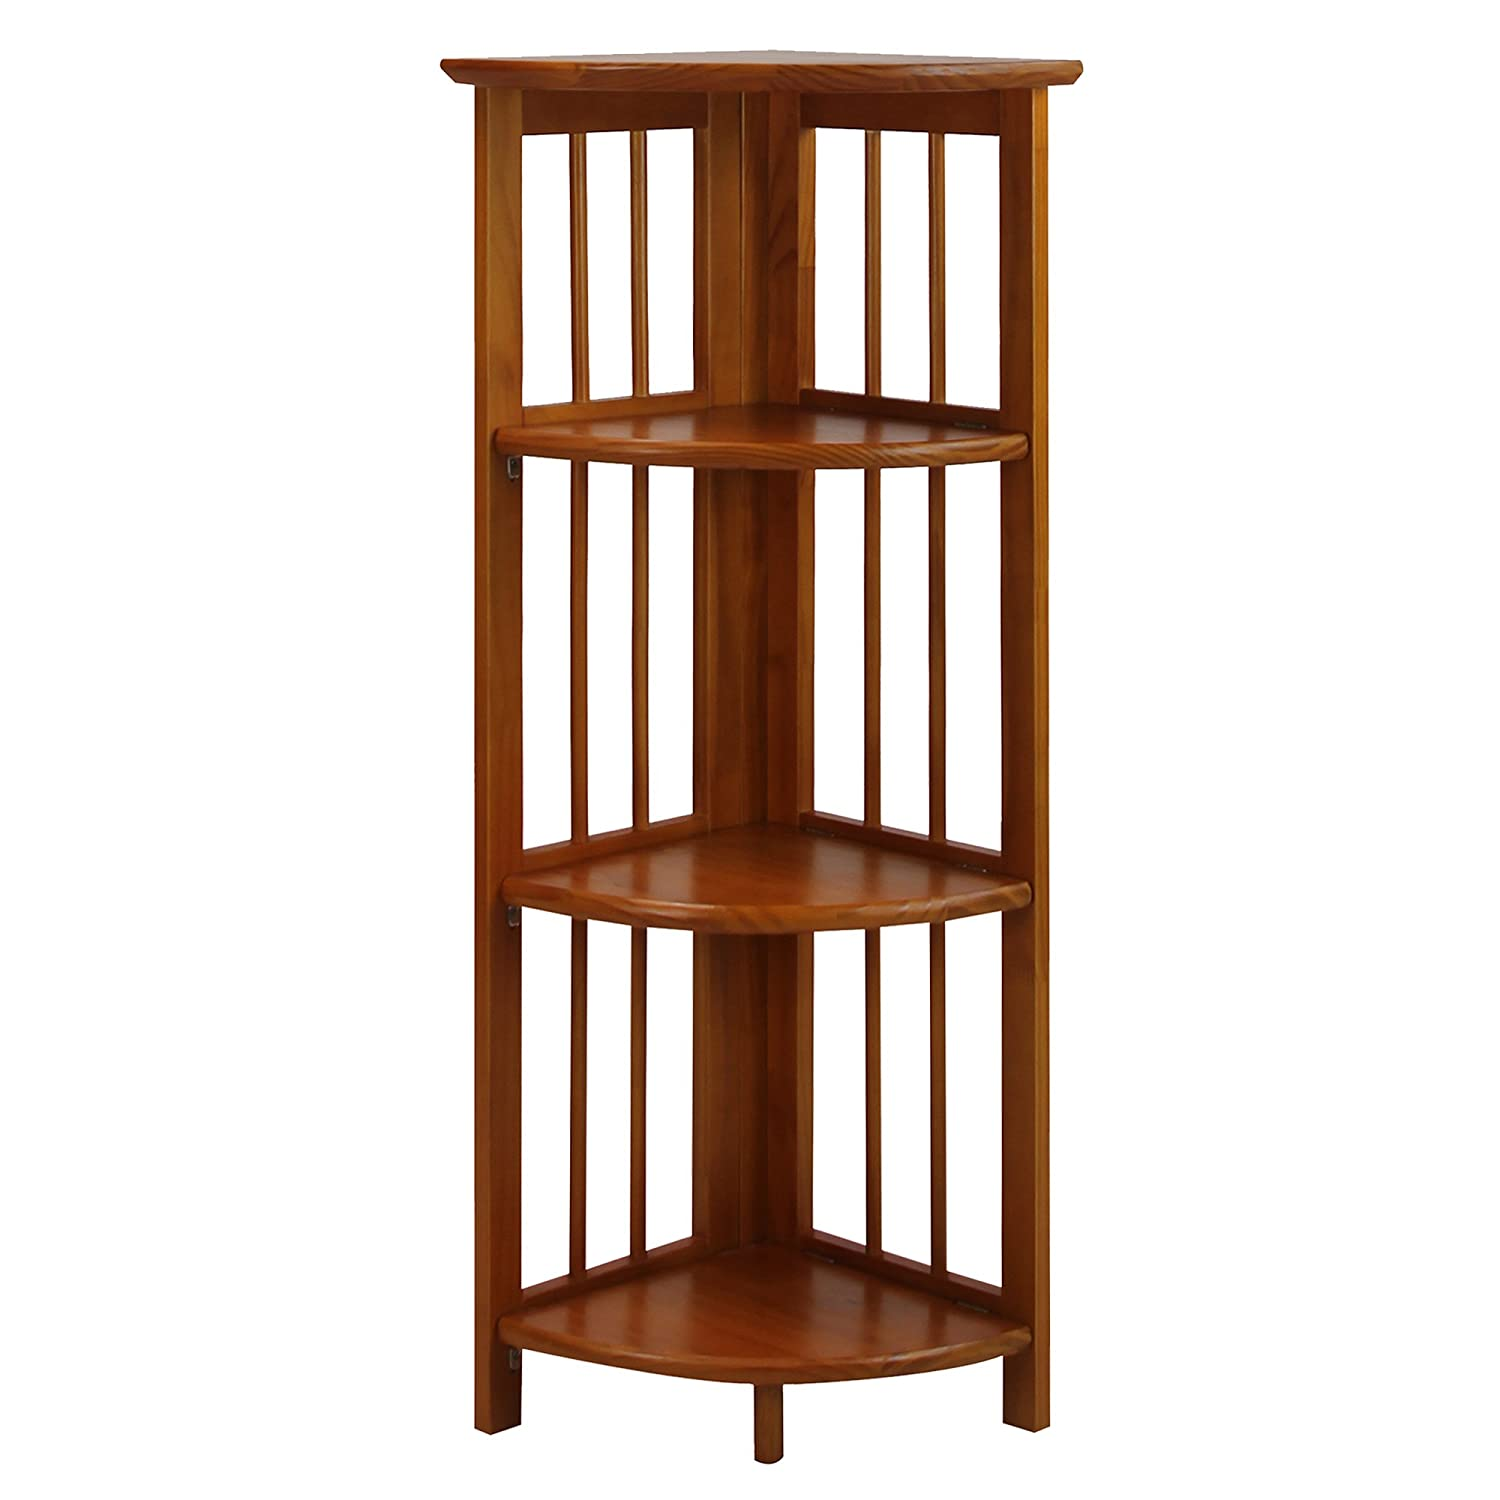 three shelf with l images oak amish for view bookshelf pegs bookcases solid larger shelves wood tier